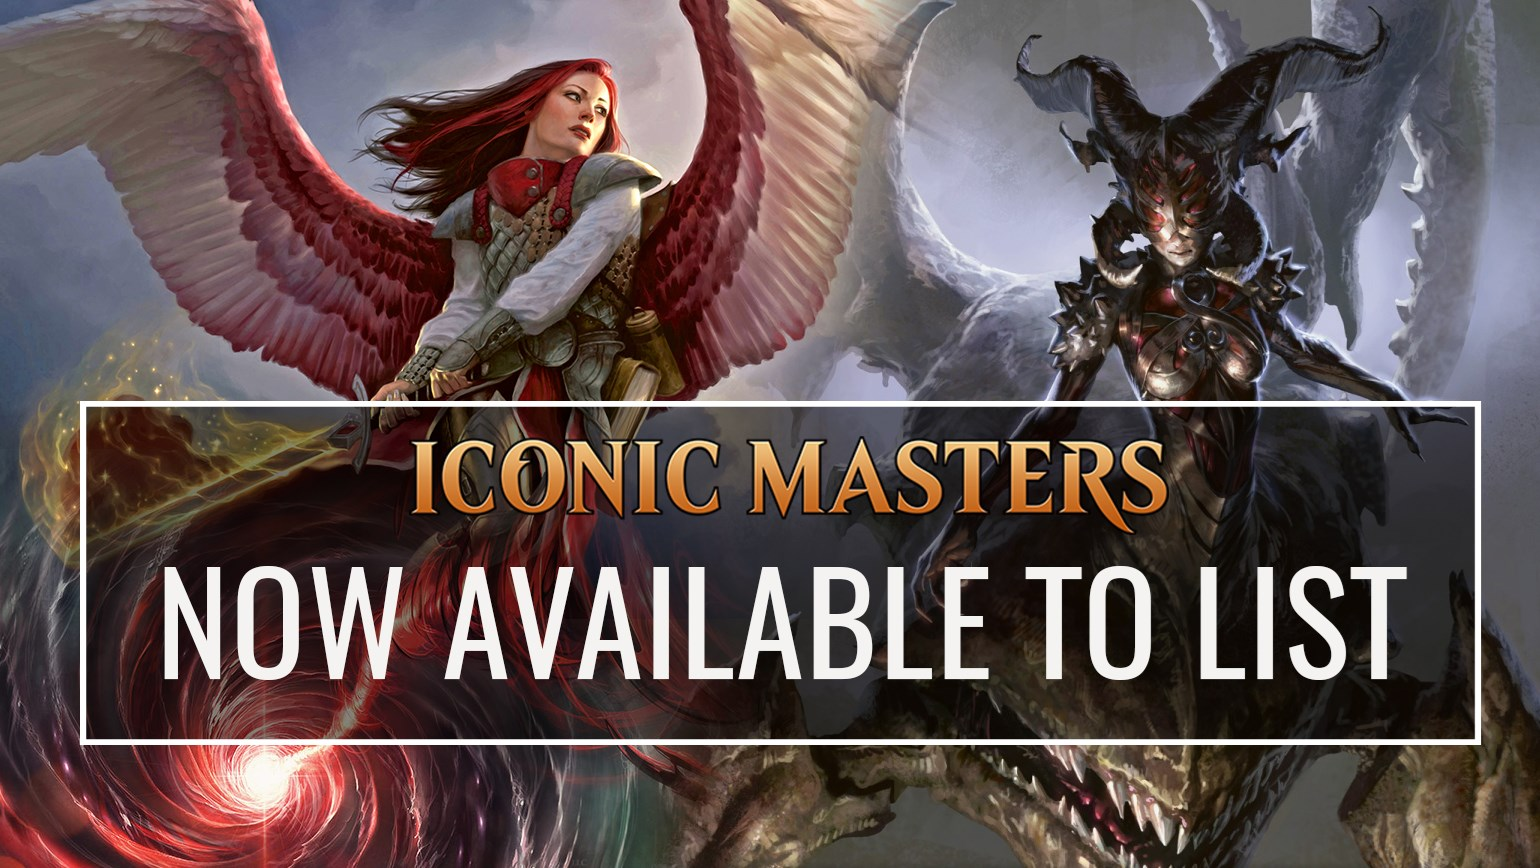 Iconic Masters Fully Available to List on TCGplayer